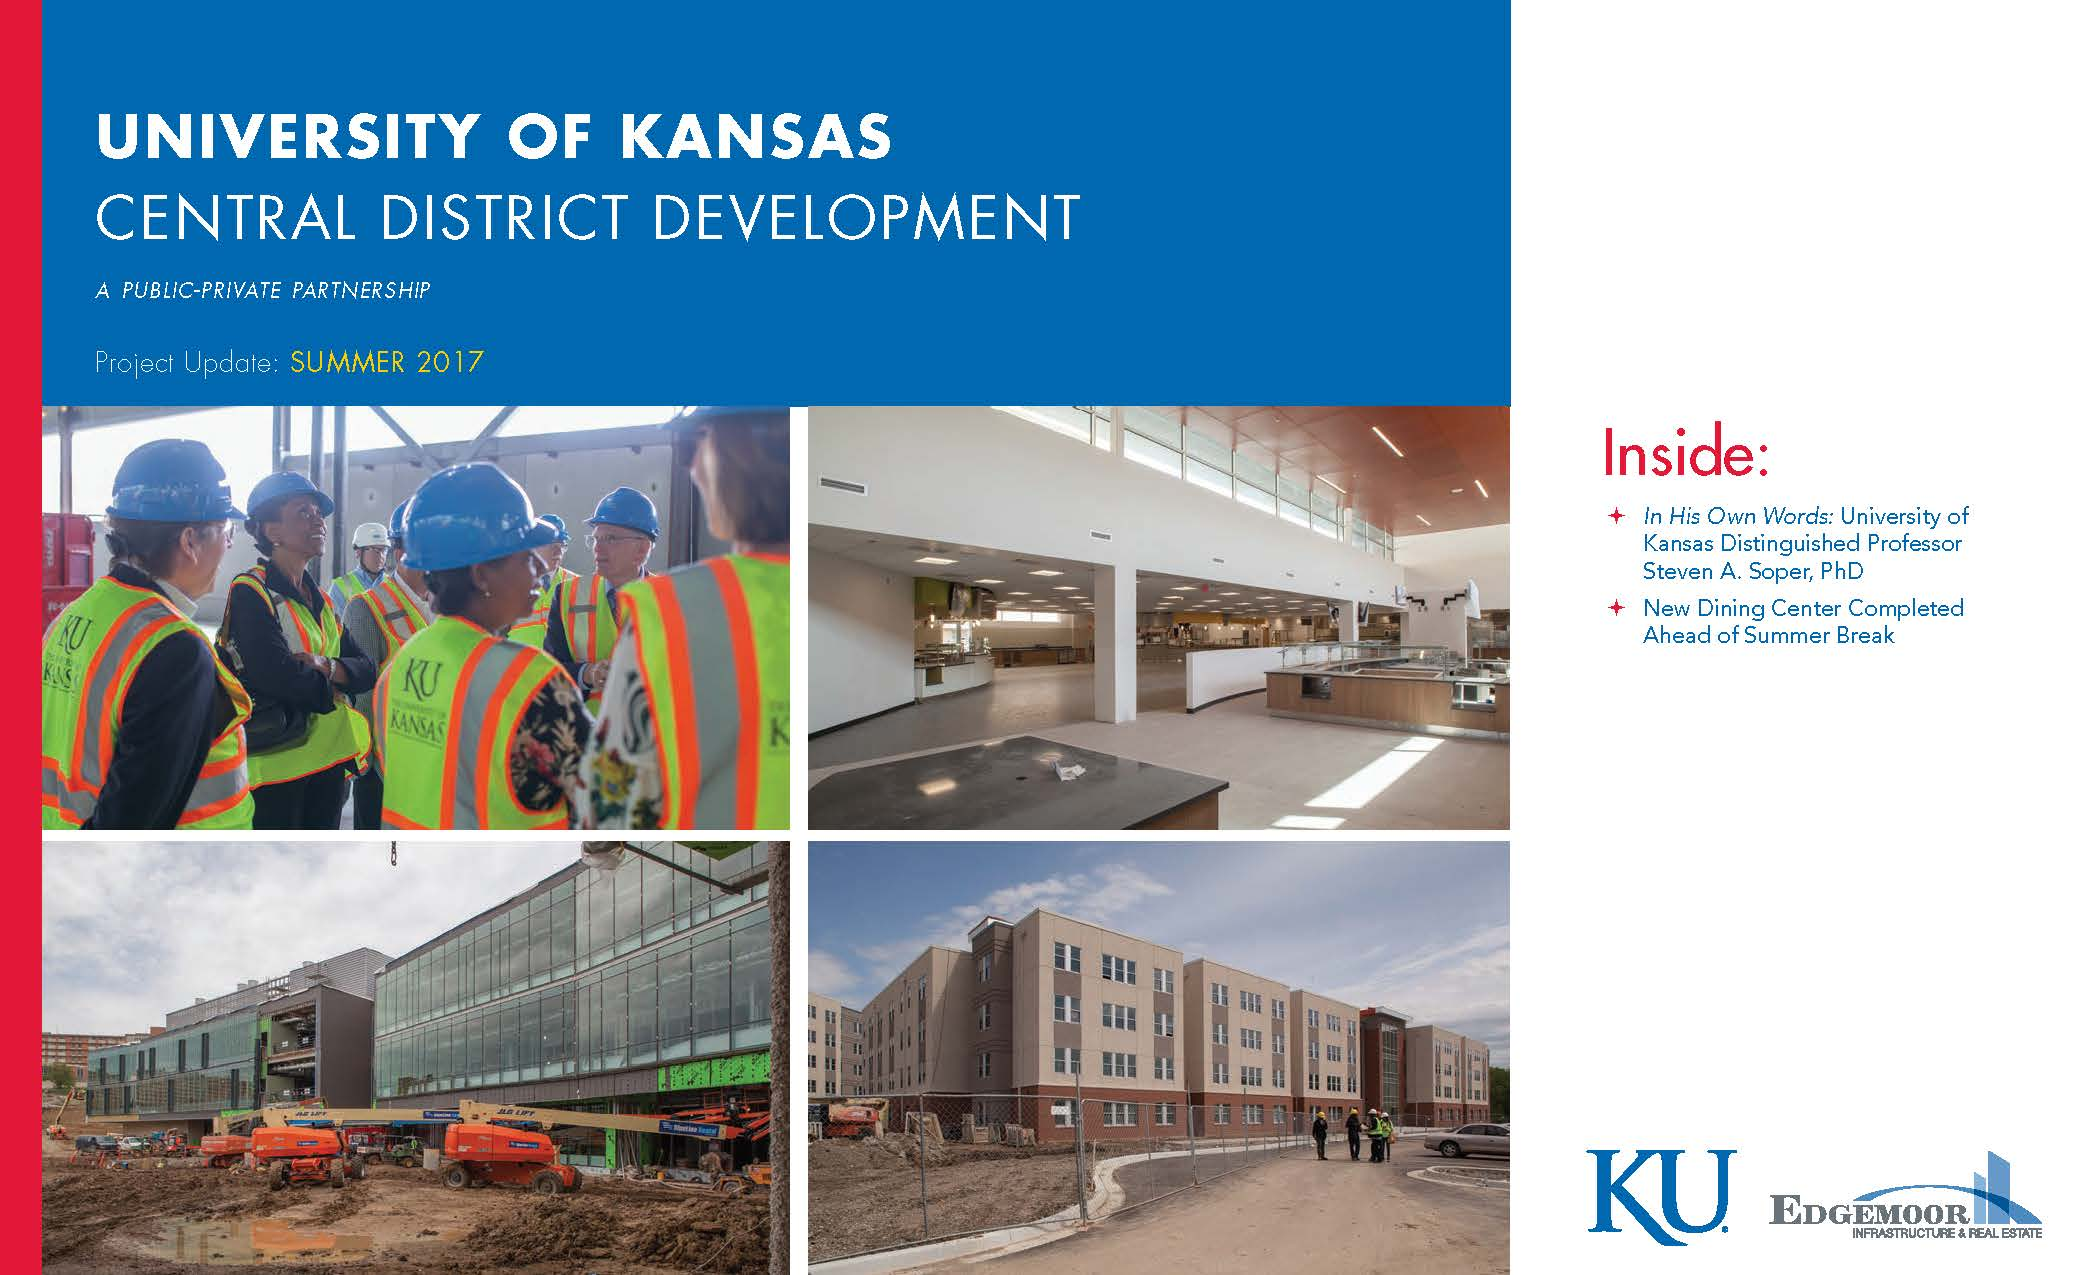 Download a copy of the University of Kansas' Central District Development Project Newsletter – Summer 2017, highlighting the completion of the new Student Residence Dining Hall and an interview with Distinguished Professor Steven A. Soper, PhD